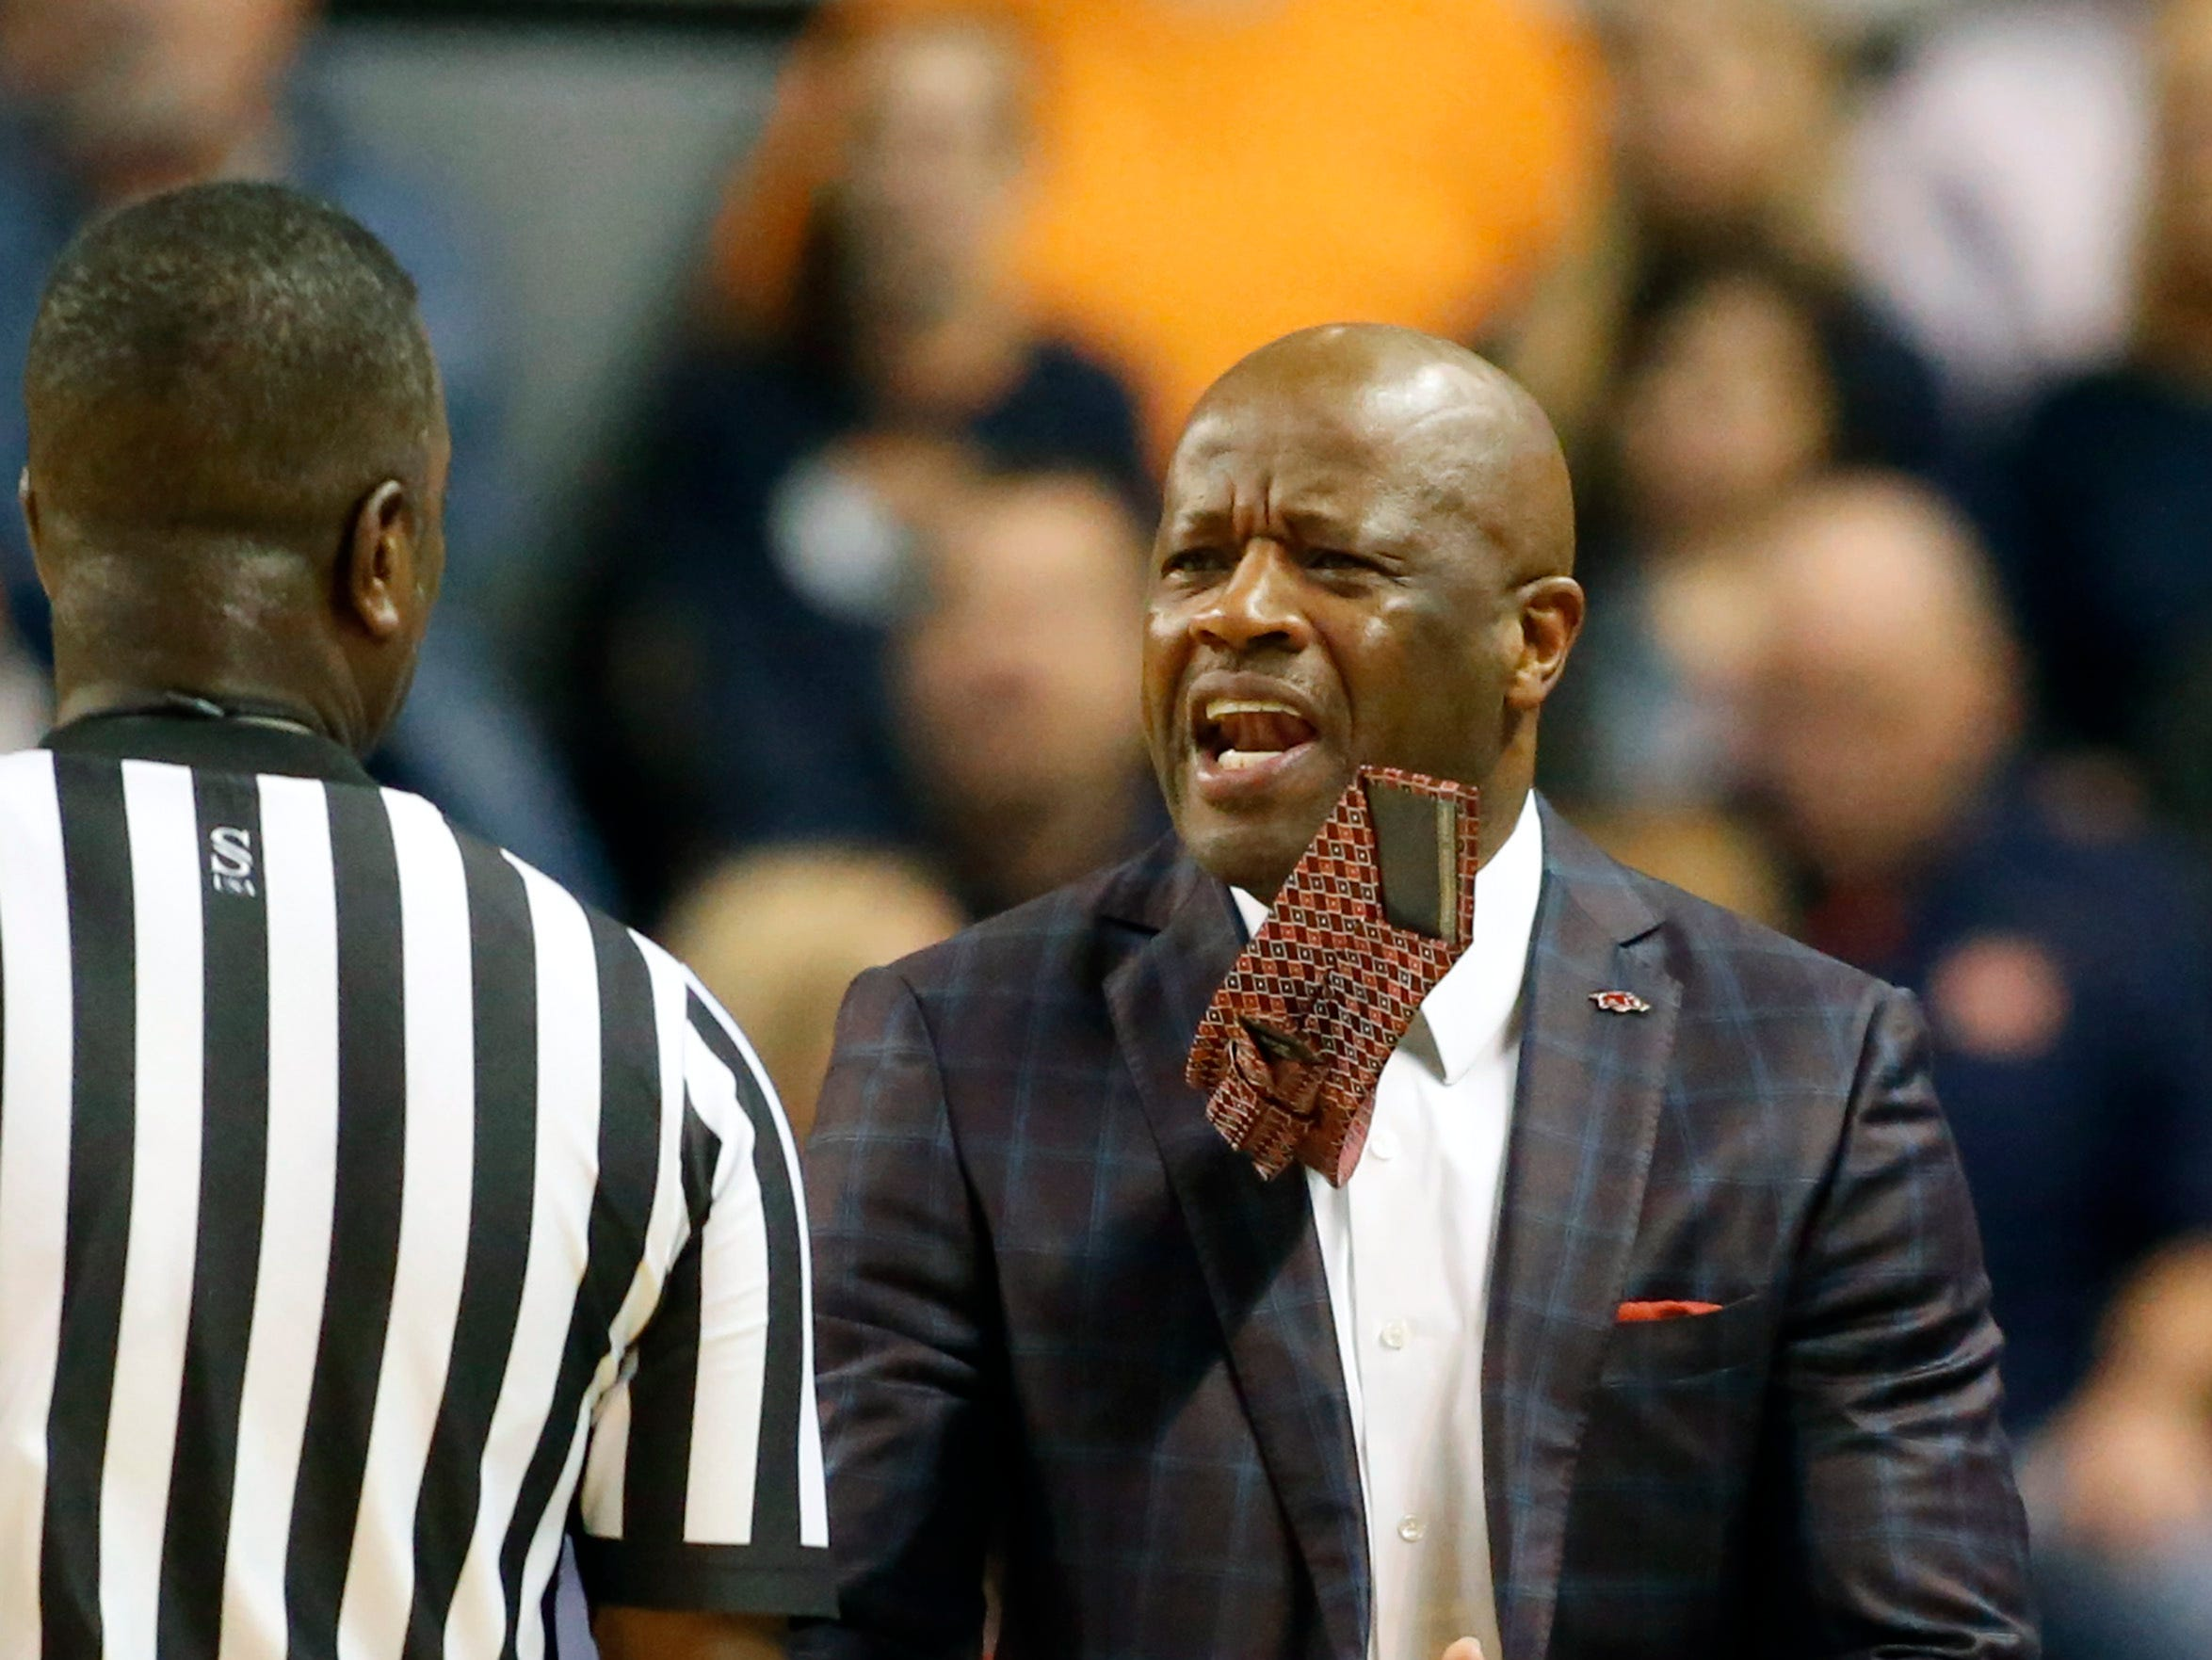 Feb 20, 2019; Auburn, AL, USA; Arkansas Razorbacks head coach Mike Anderson reacts after a technical foul is called on the Razorbacks during the first half against the Auburn Tigers at Auburn Arena. Mandatory Credit: John Reed-USA TODAY Sports